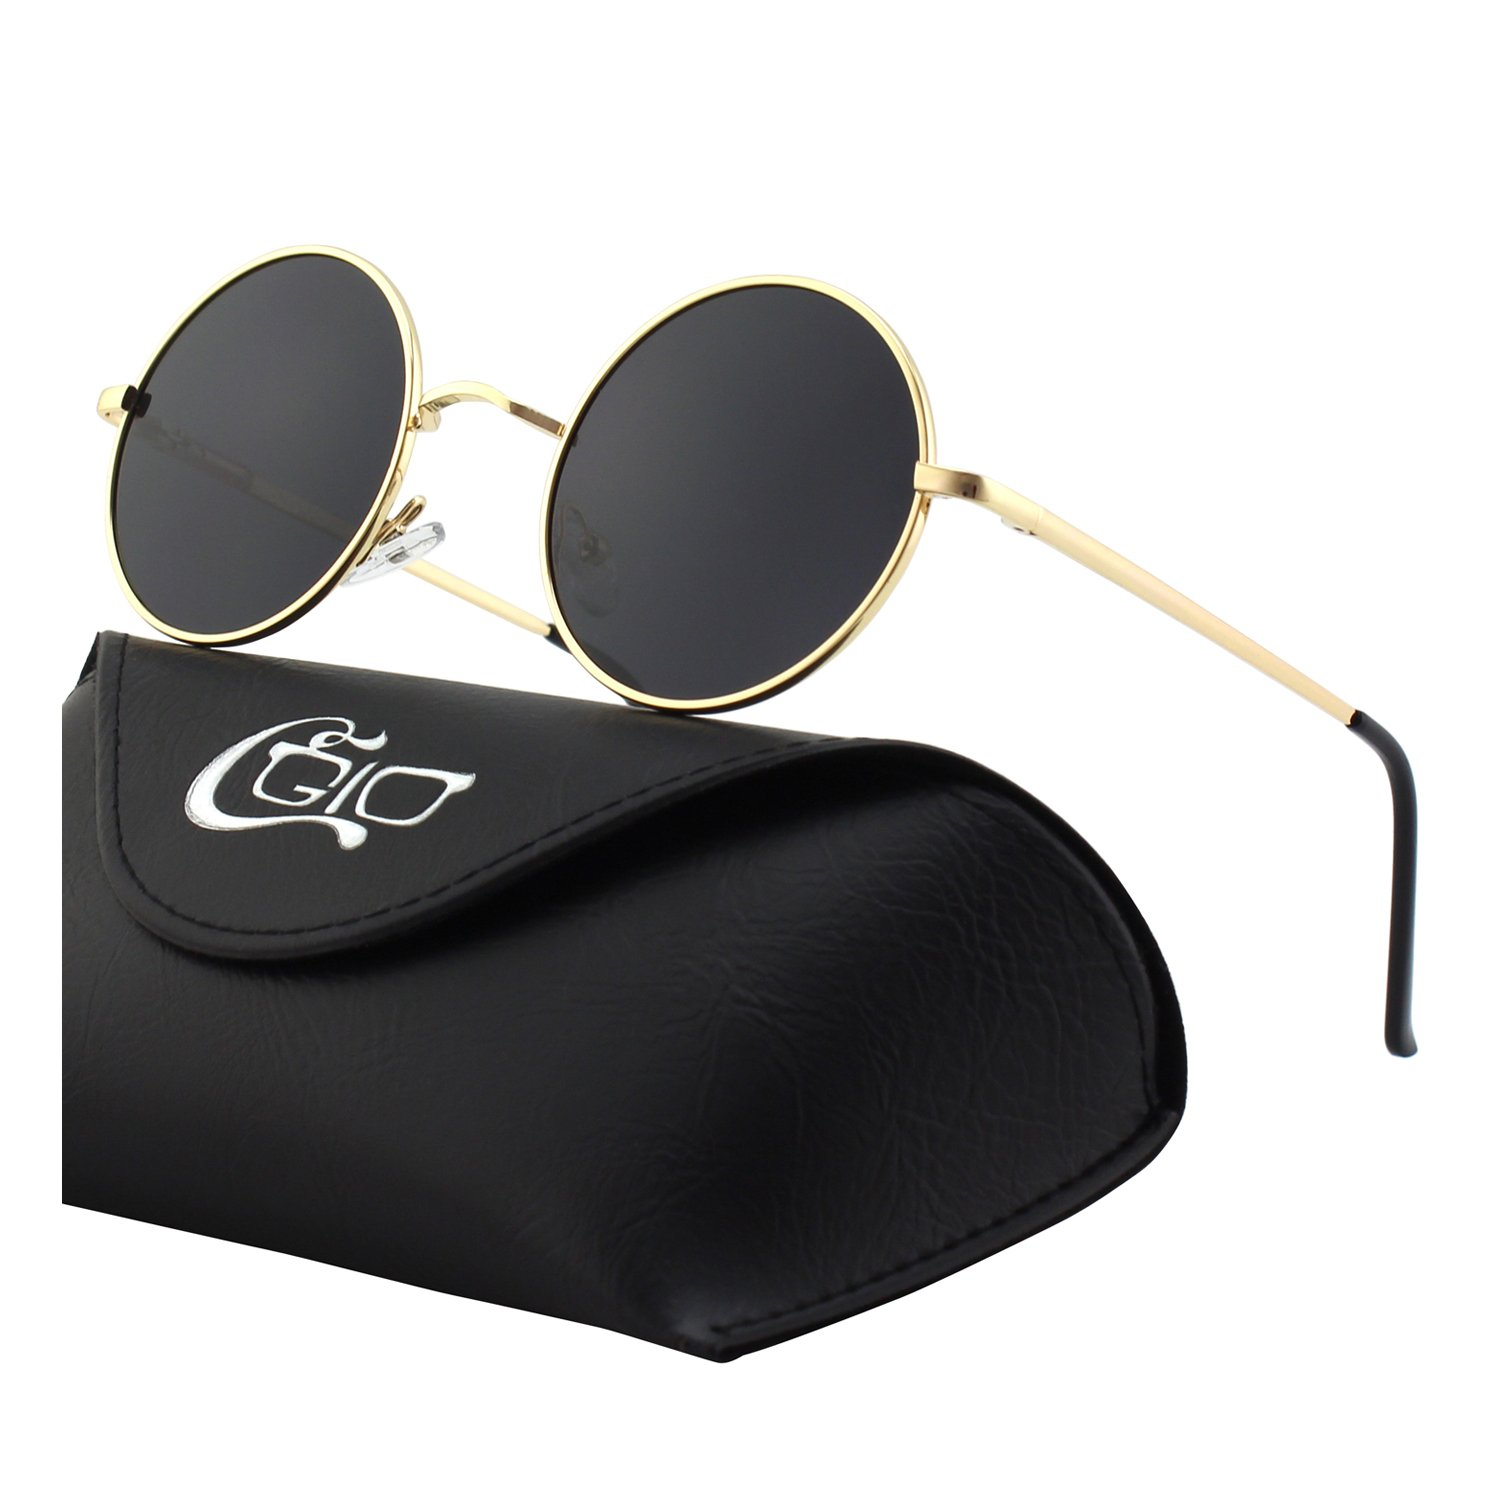 a86d6a94ef3 CGID E01 Retro Vintage Style Lennon Inspired Round Metal Circle Polarized  Sunglasses for Women and Men